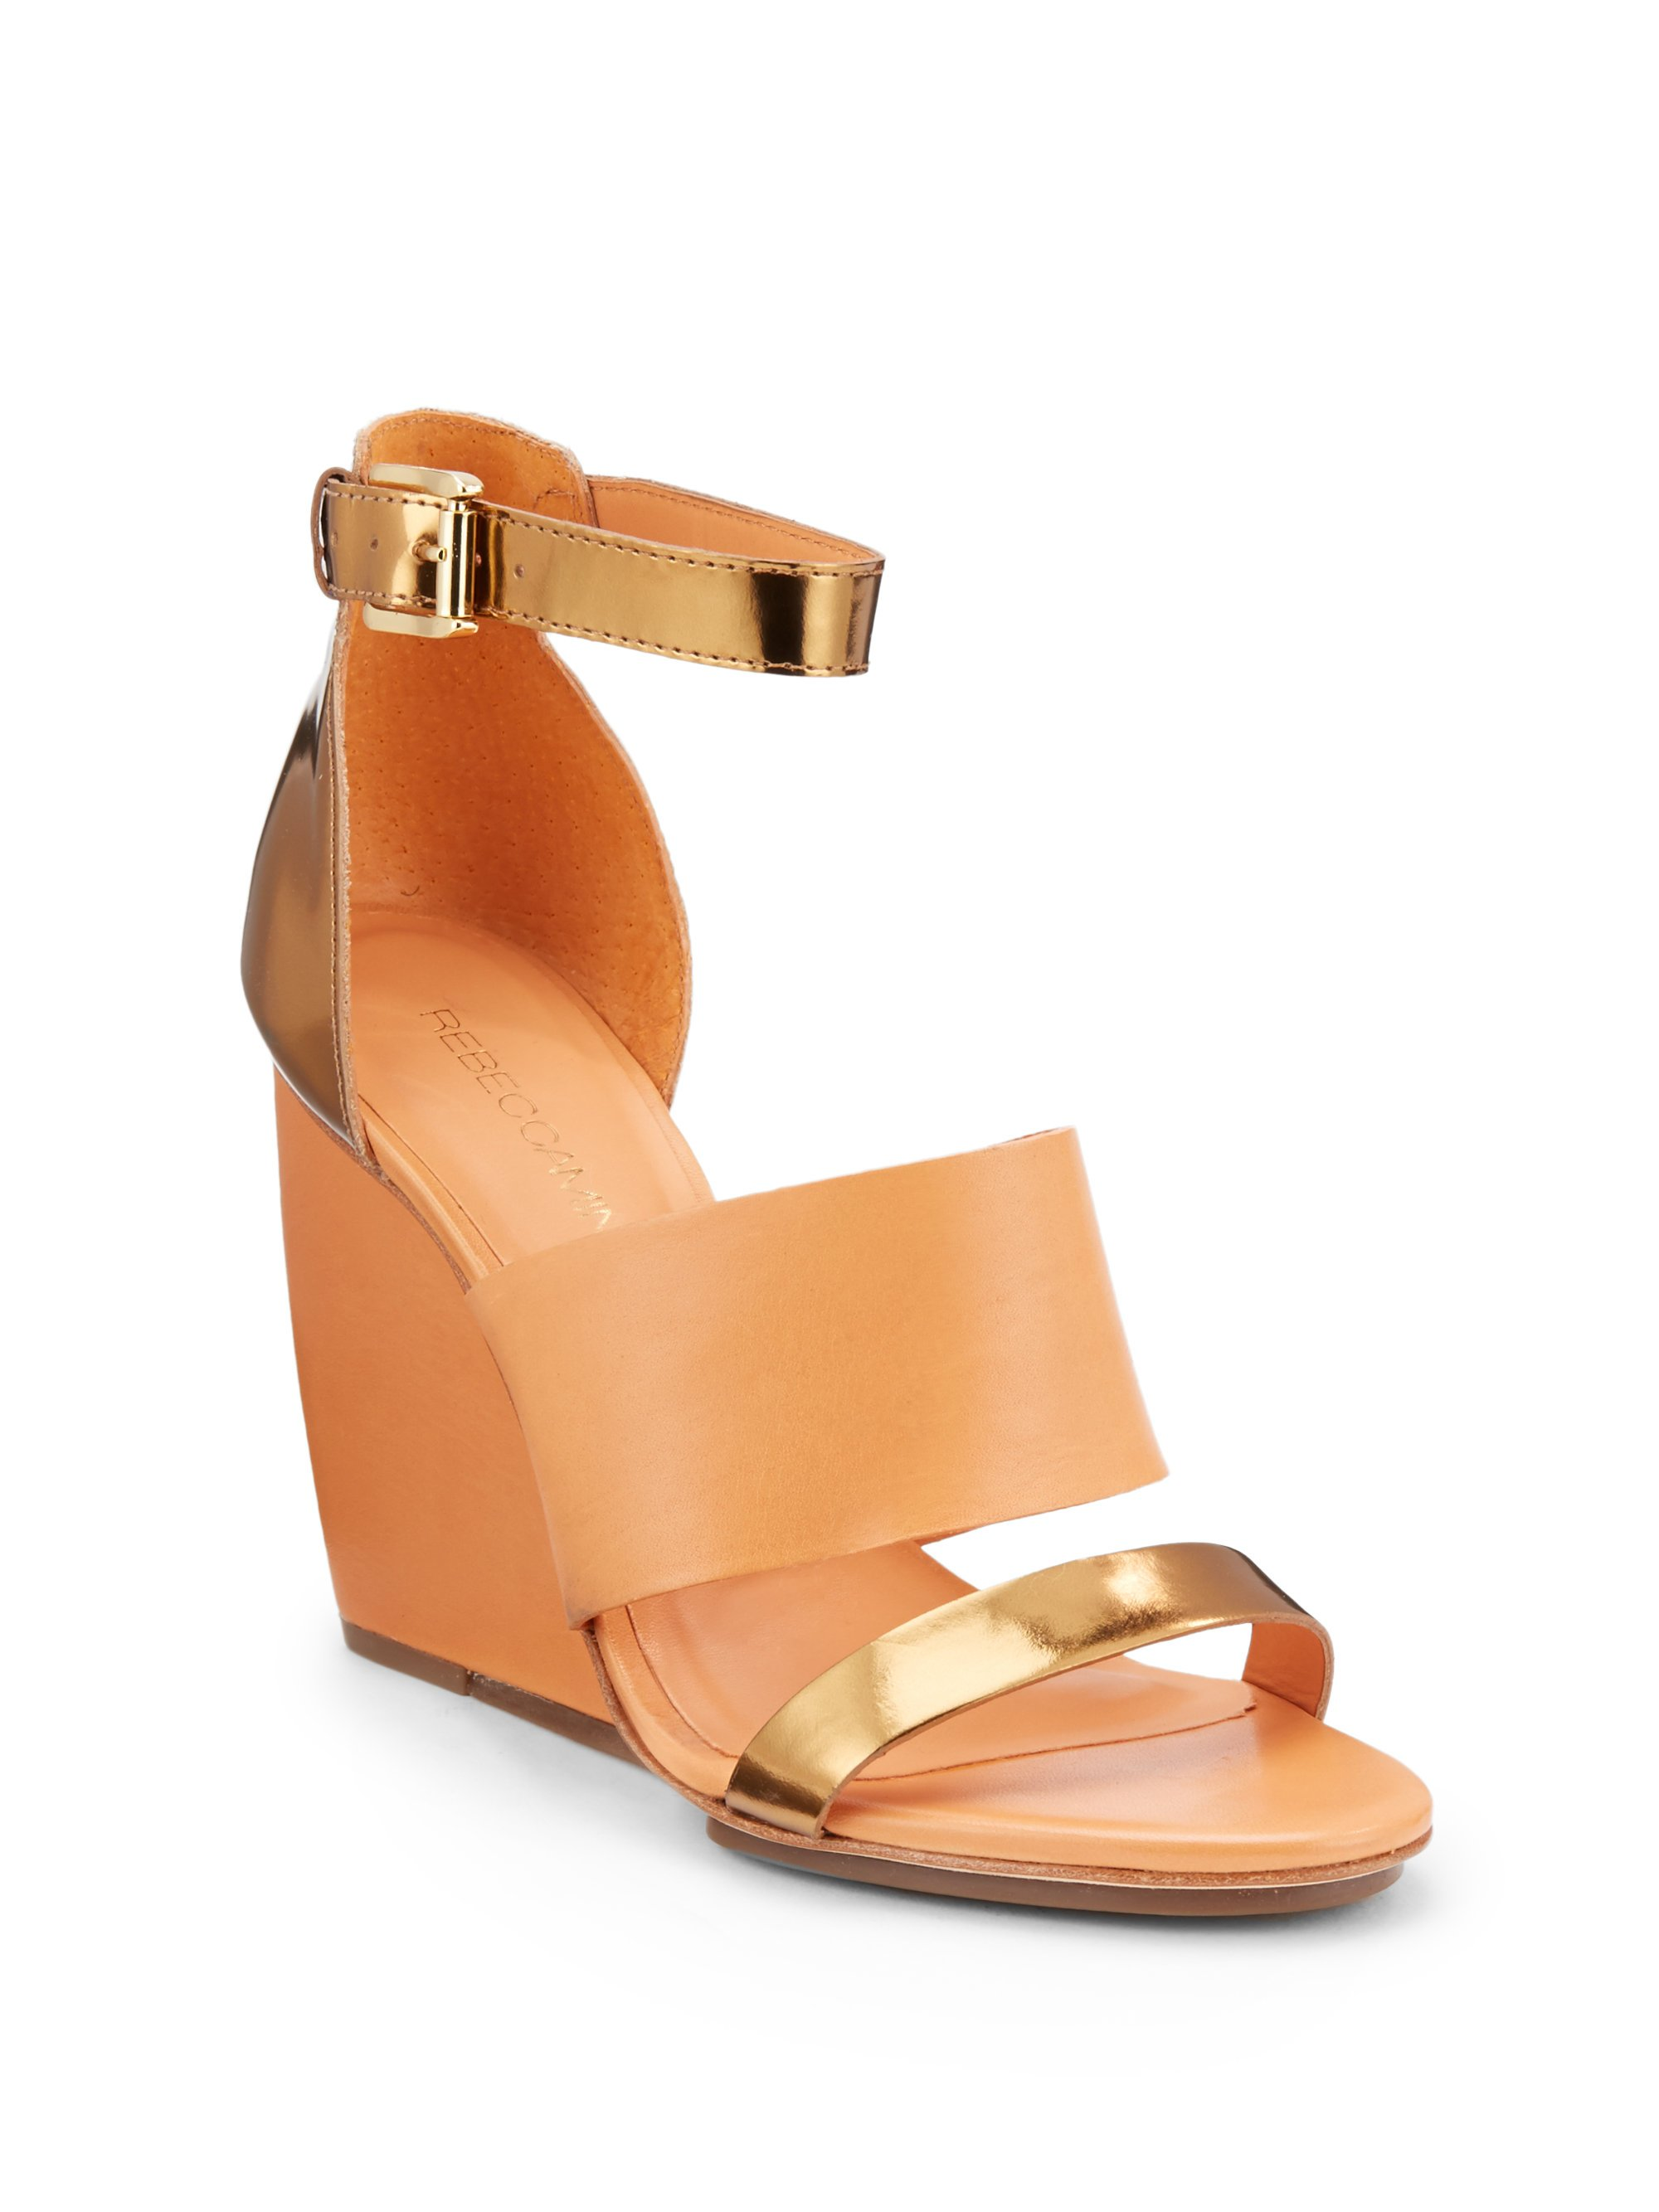 Rebecca Minkoff Leather Laser Cut Wedges cheap sale footlocker pictures nsZa1